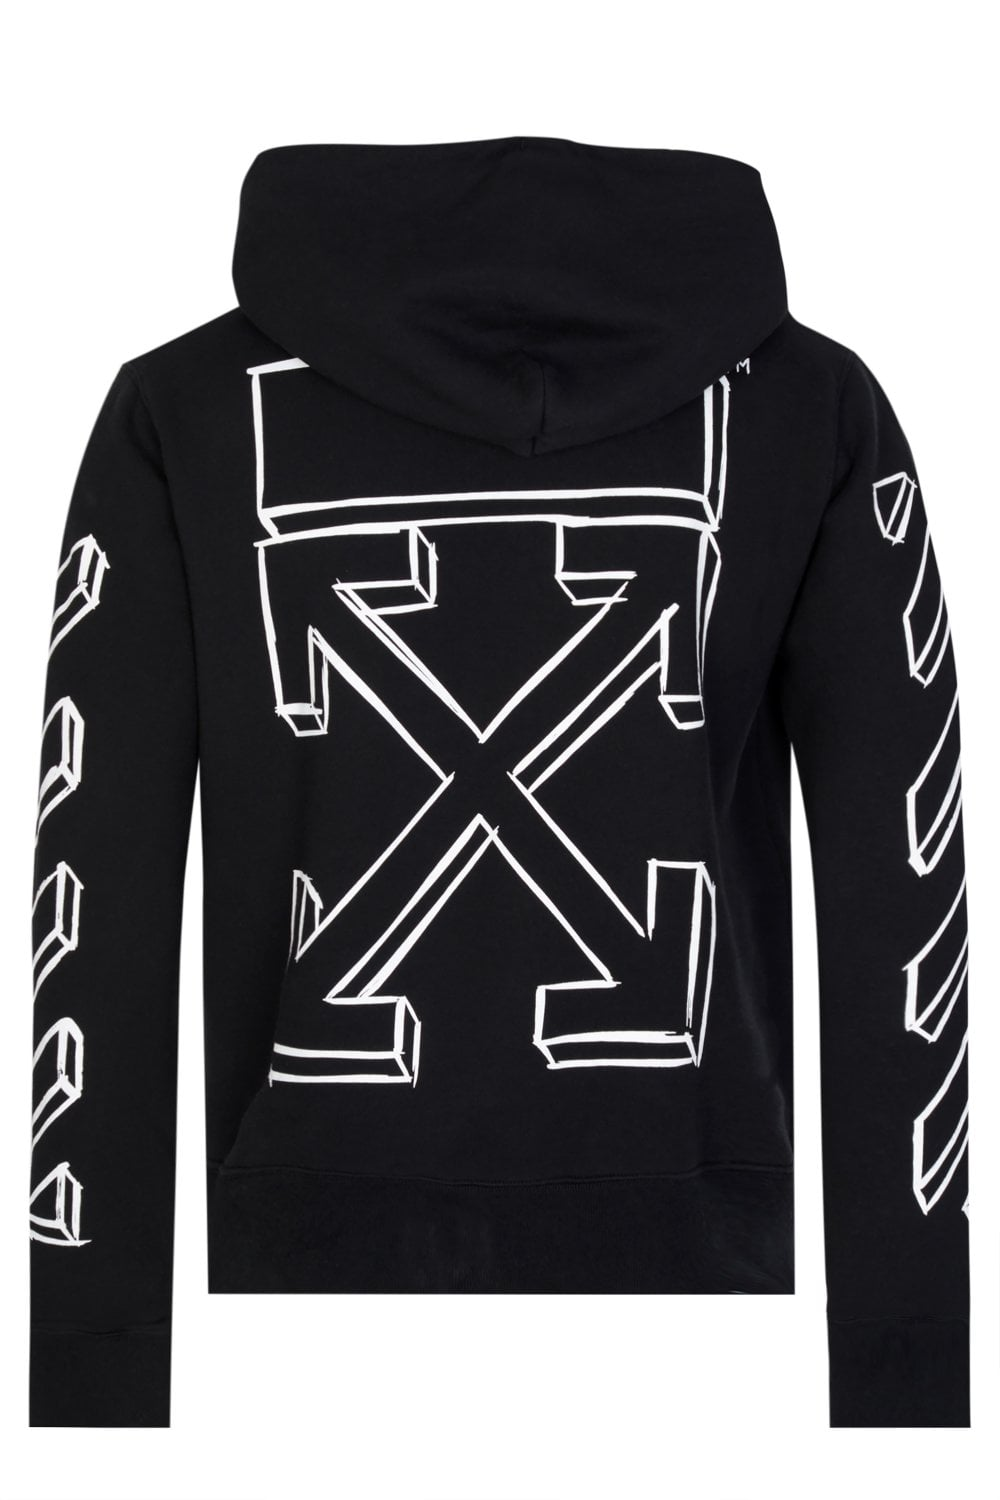 4eb868716d Off-White Diagonal Marker Arrows Hooded Top Black